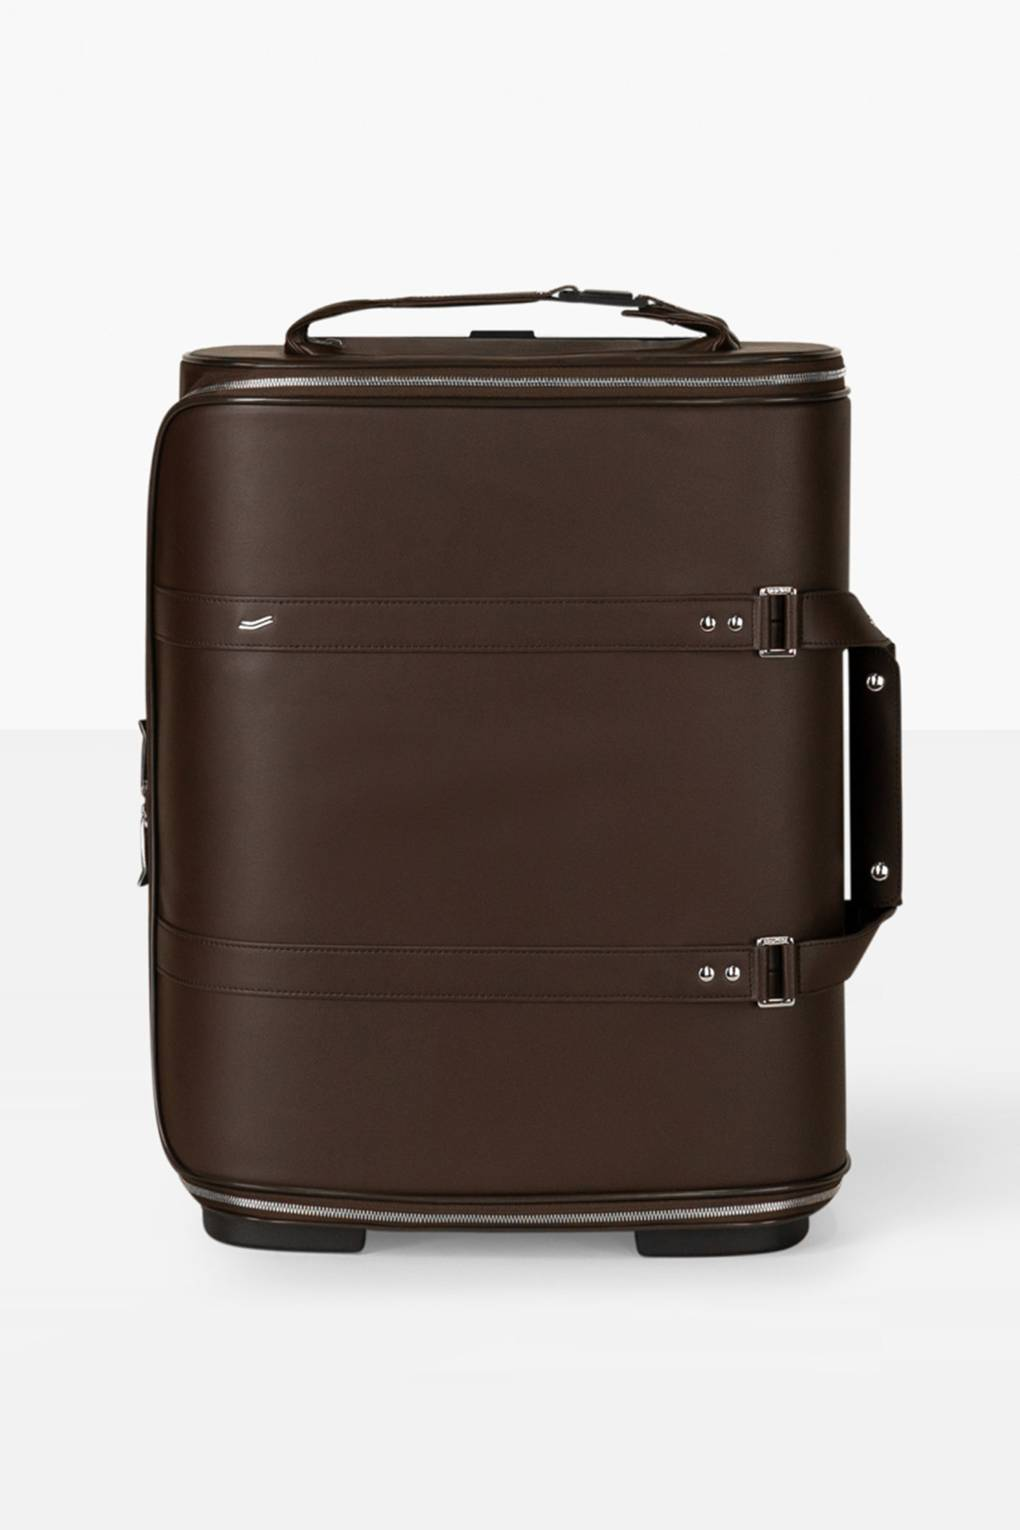 9656e68c09da9b Best suitcases and travel bags to jet away with all year-round ...